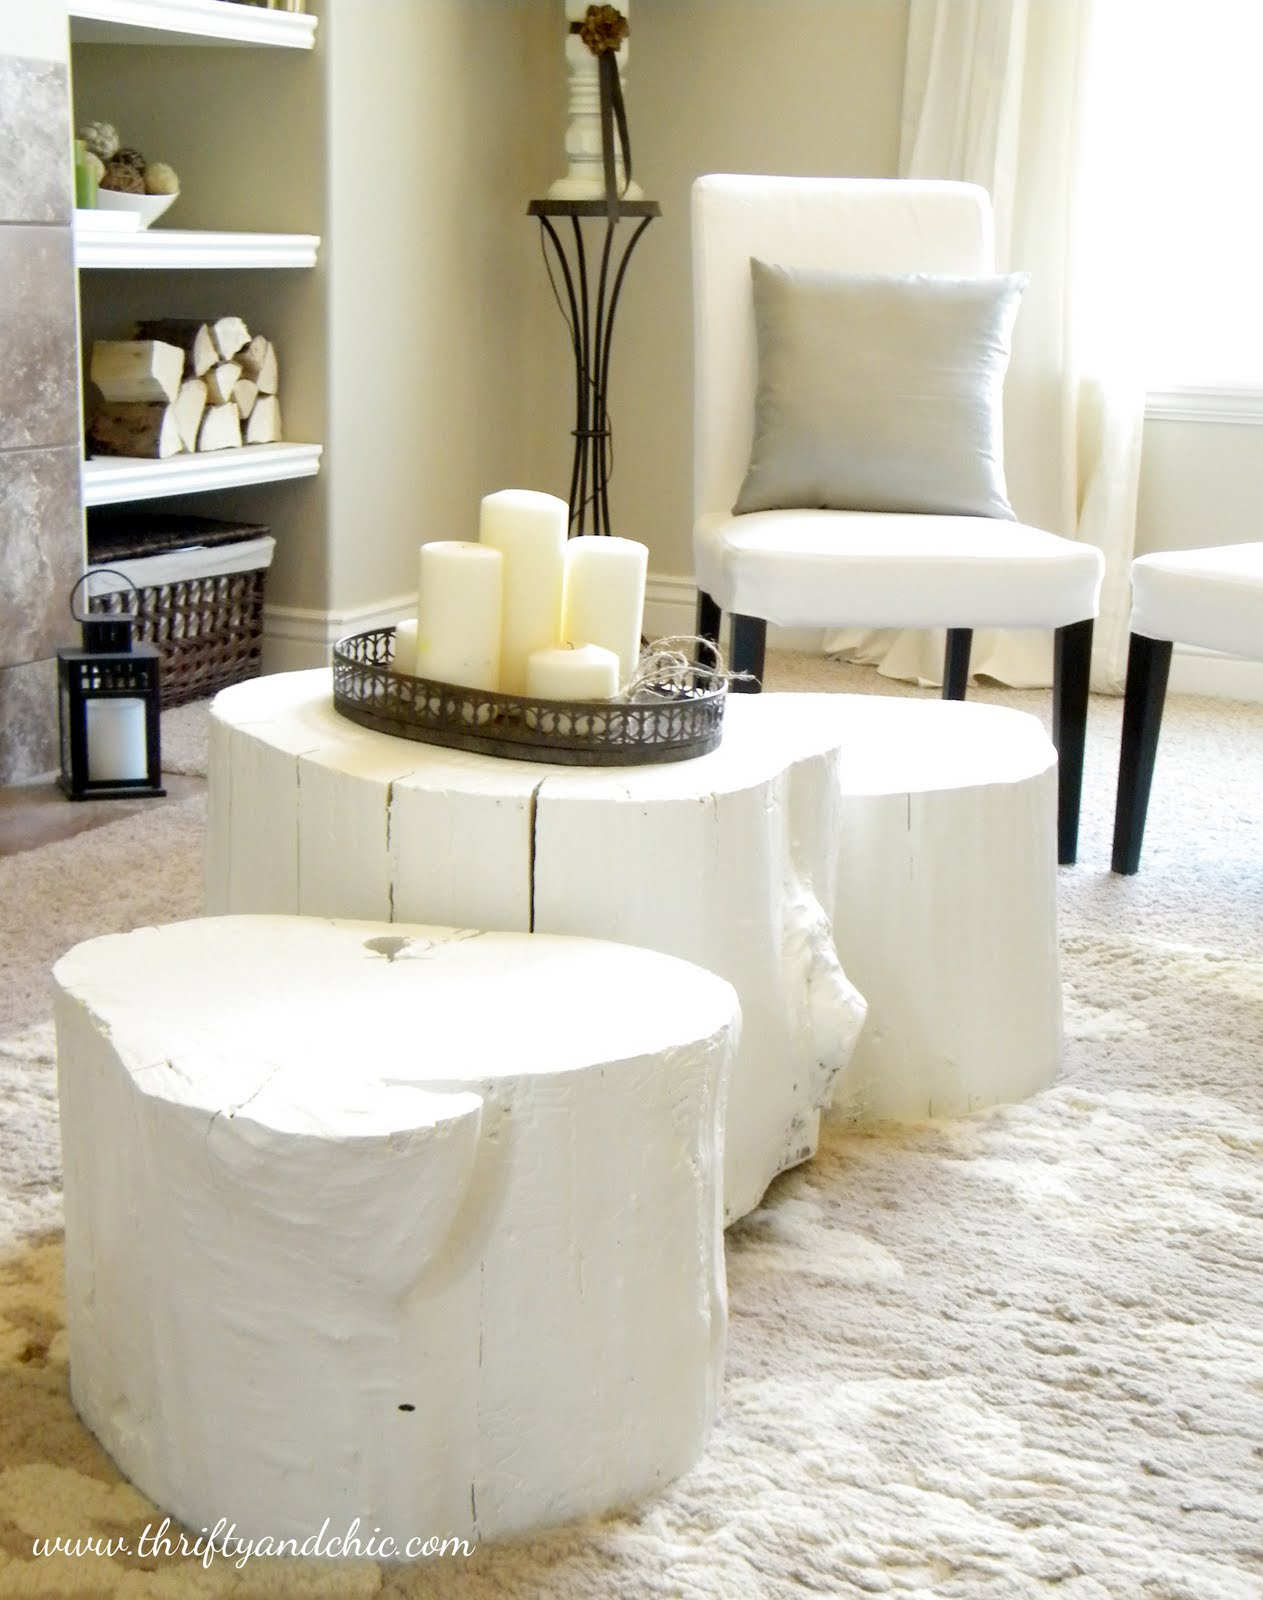 DIY Painted Tree Stump Coffee Table Thrifty and Chic The